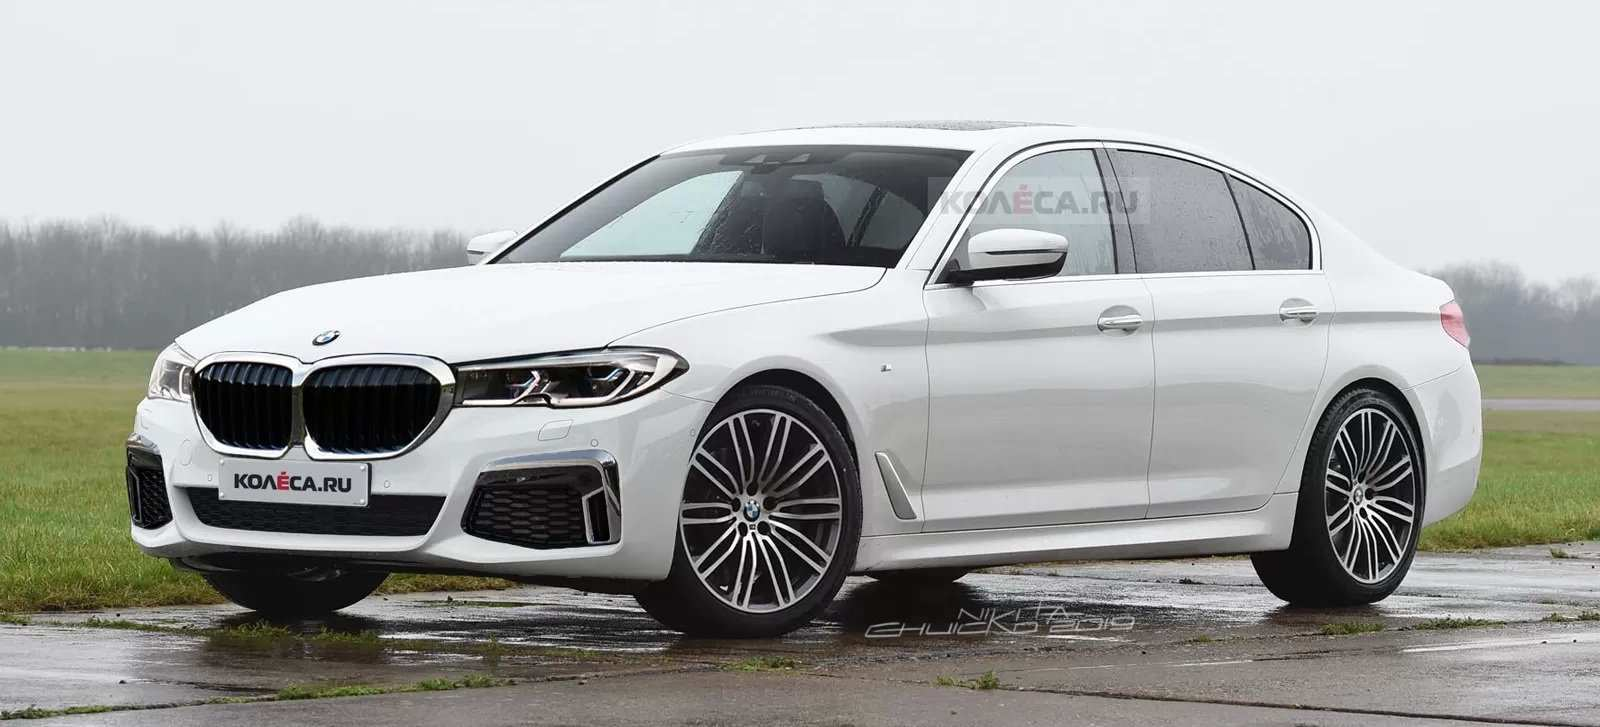 69 All New Bmw G30 2020 First Drive